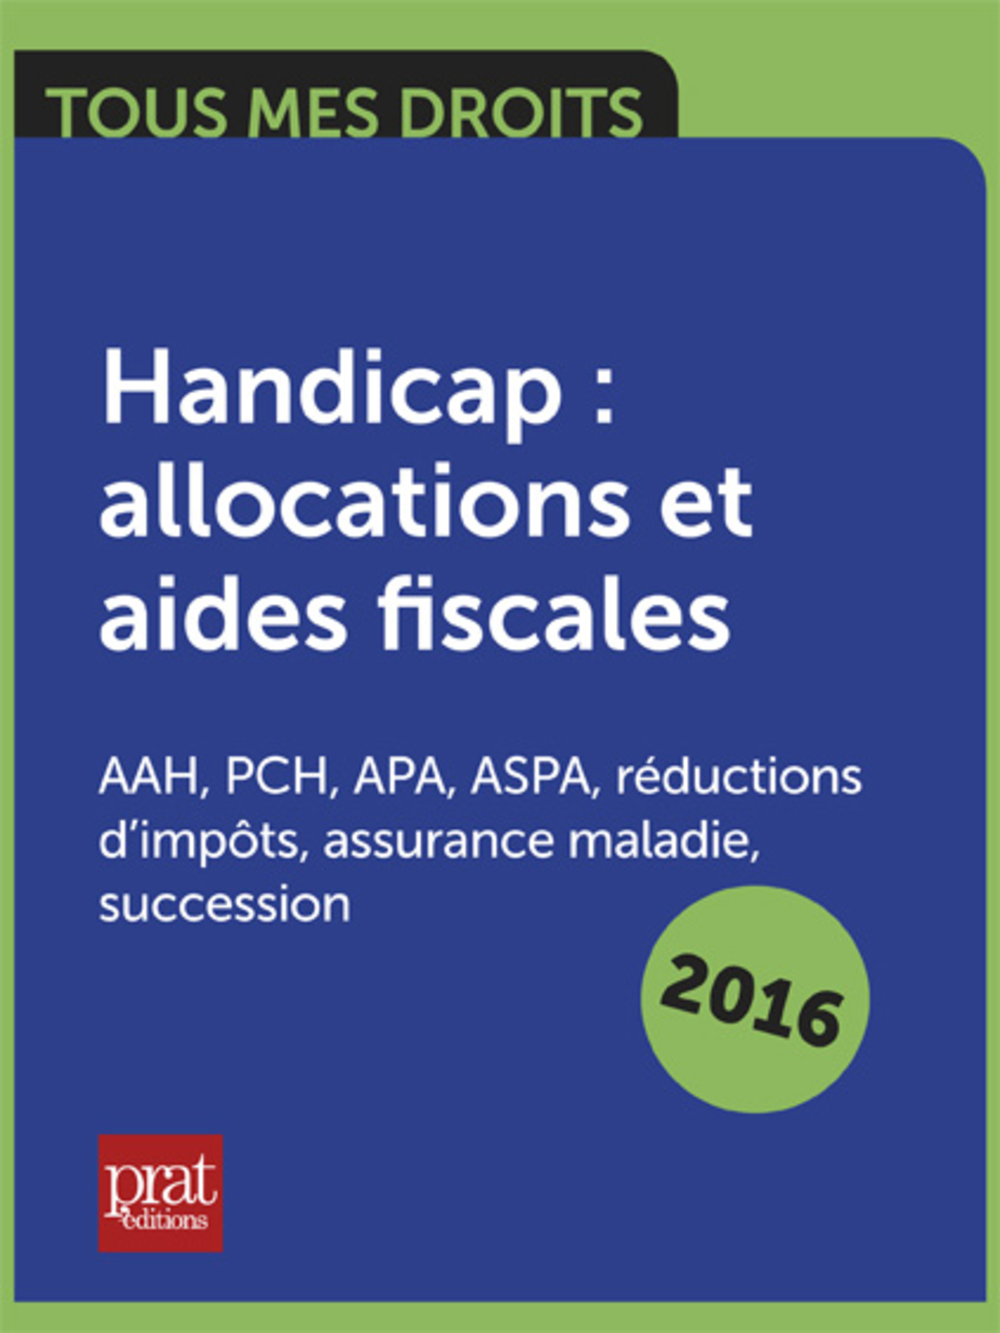 Handicap : allocations et aides fiscales AAH, PCH, APA, ASPA, réductions d'impôts, assurance maladie, succession